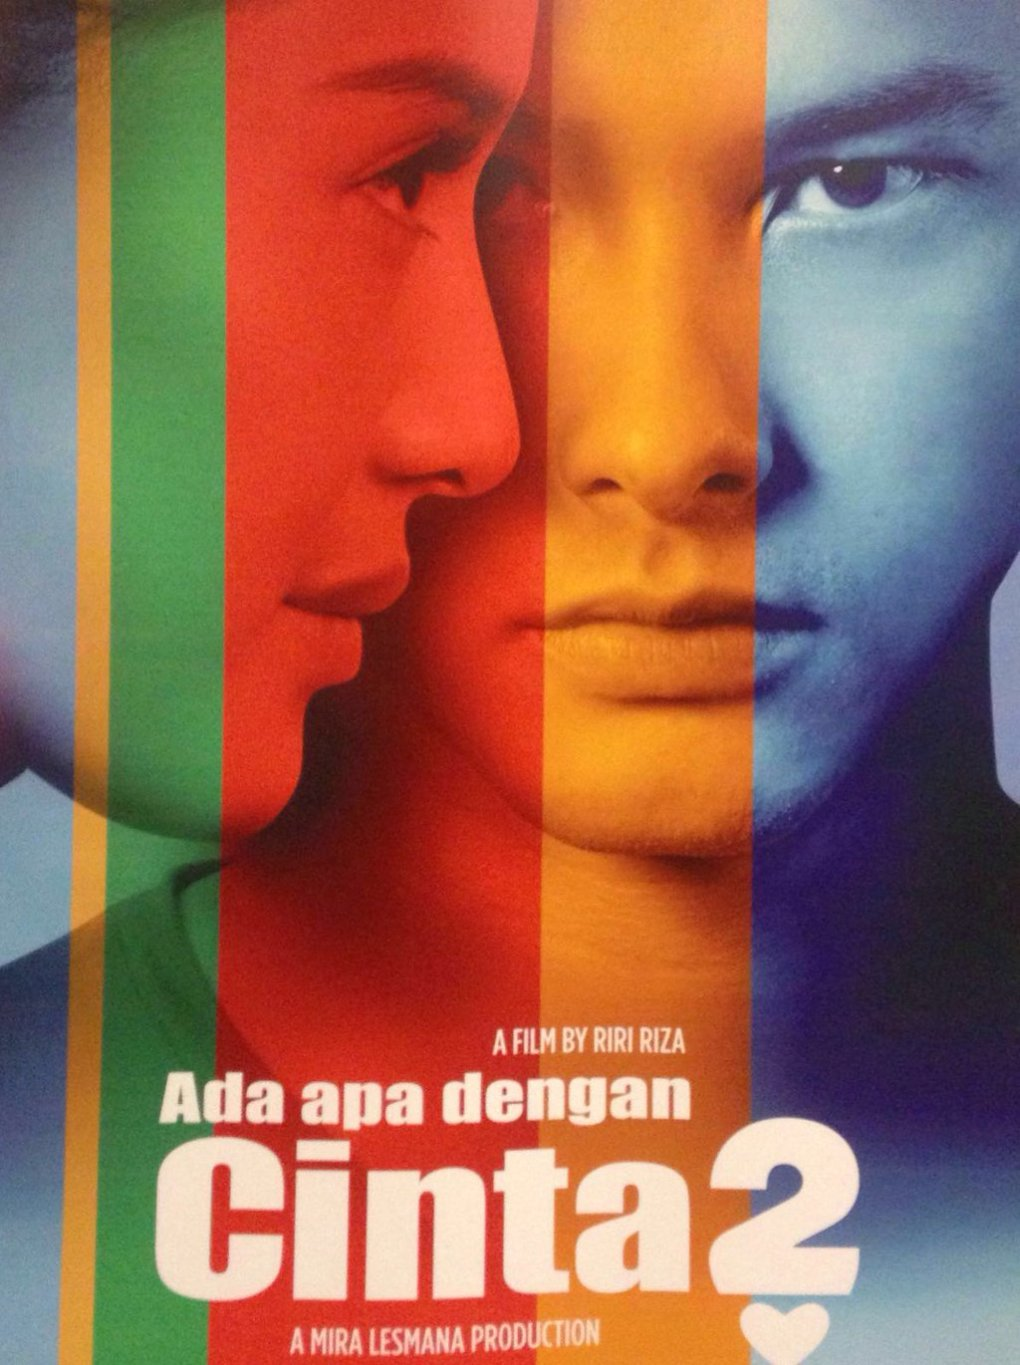 aadc2 poster